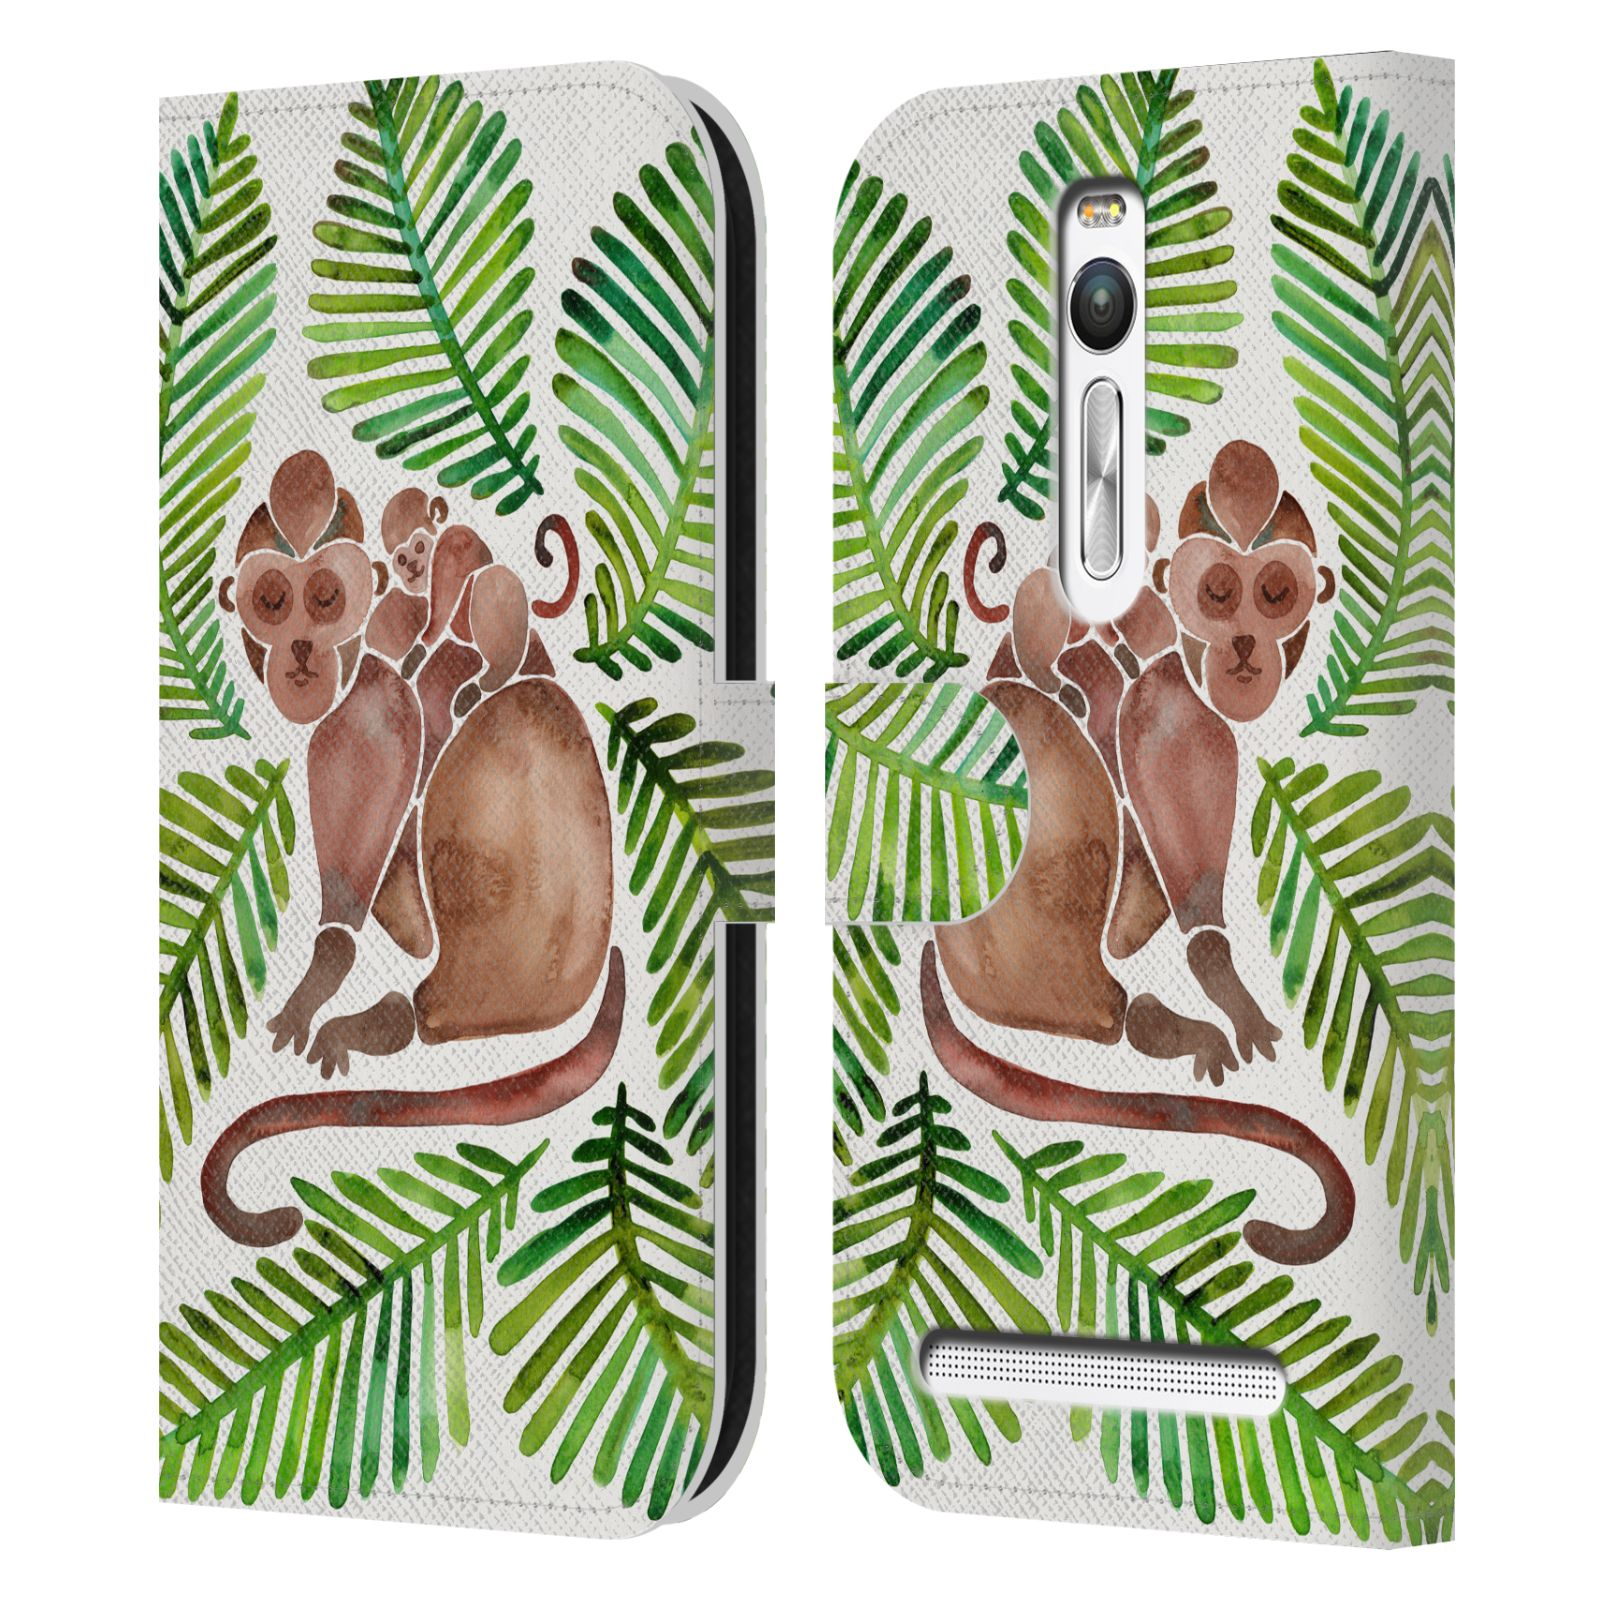 OFFICIAL-CAT-COQUILLETTE-TROPICAL-LEATHER-BOOK-CASE-FOR-ASUS-ZENFONE-PHONES